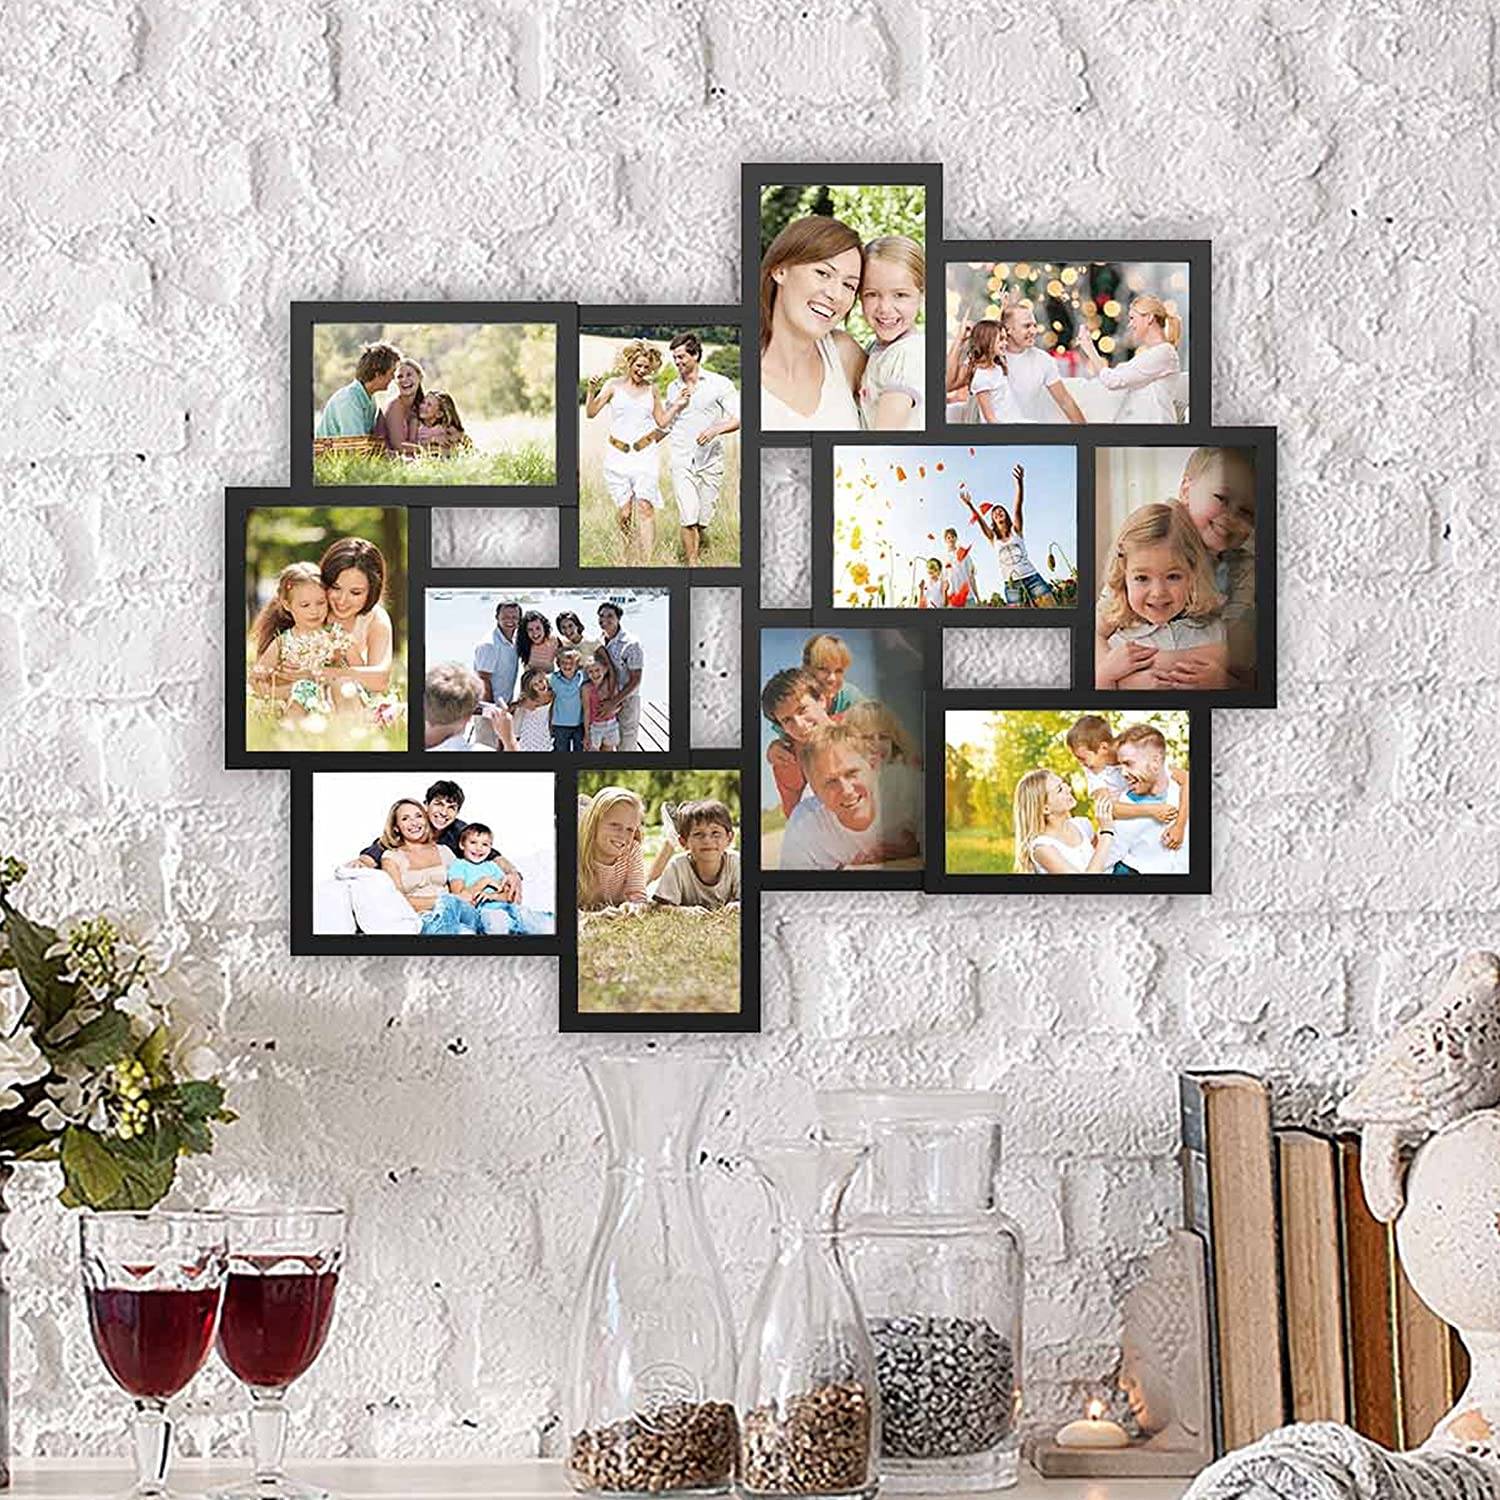 Lavish Home 80-COLL-1 Collage Picture 12 Openings for 4x6 Wall Hanging Multiple Photo Frame Display for Personalized Decor, Black